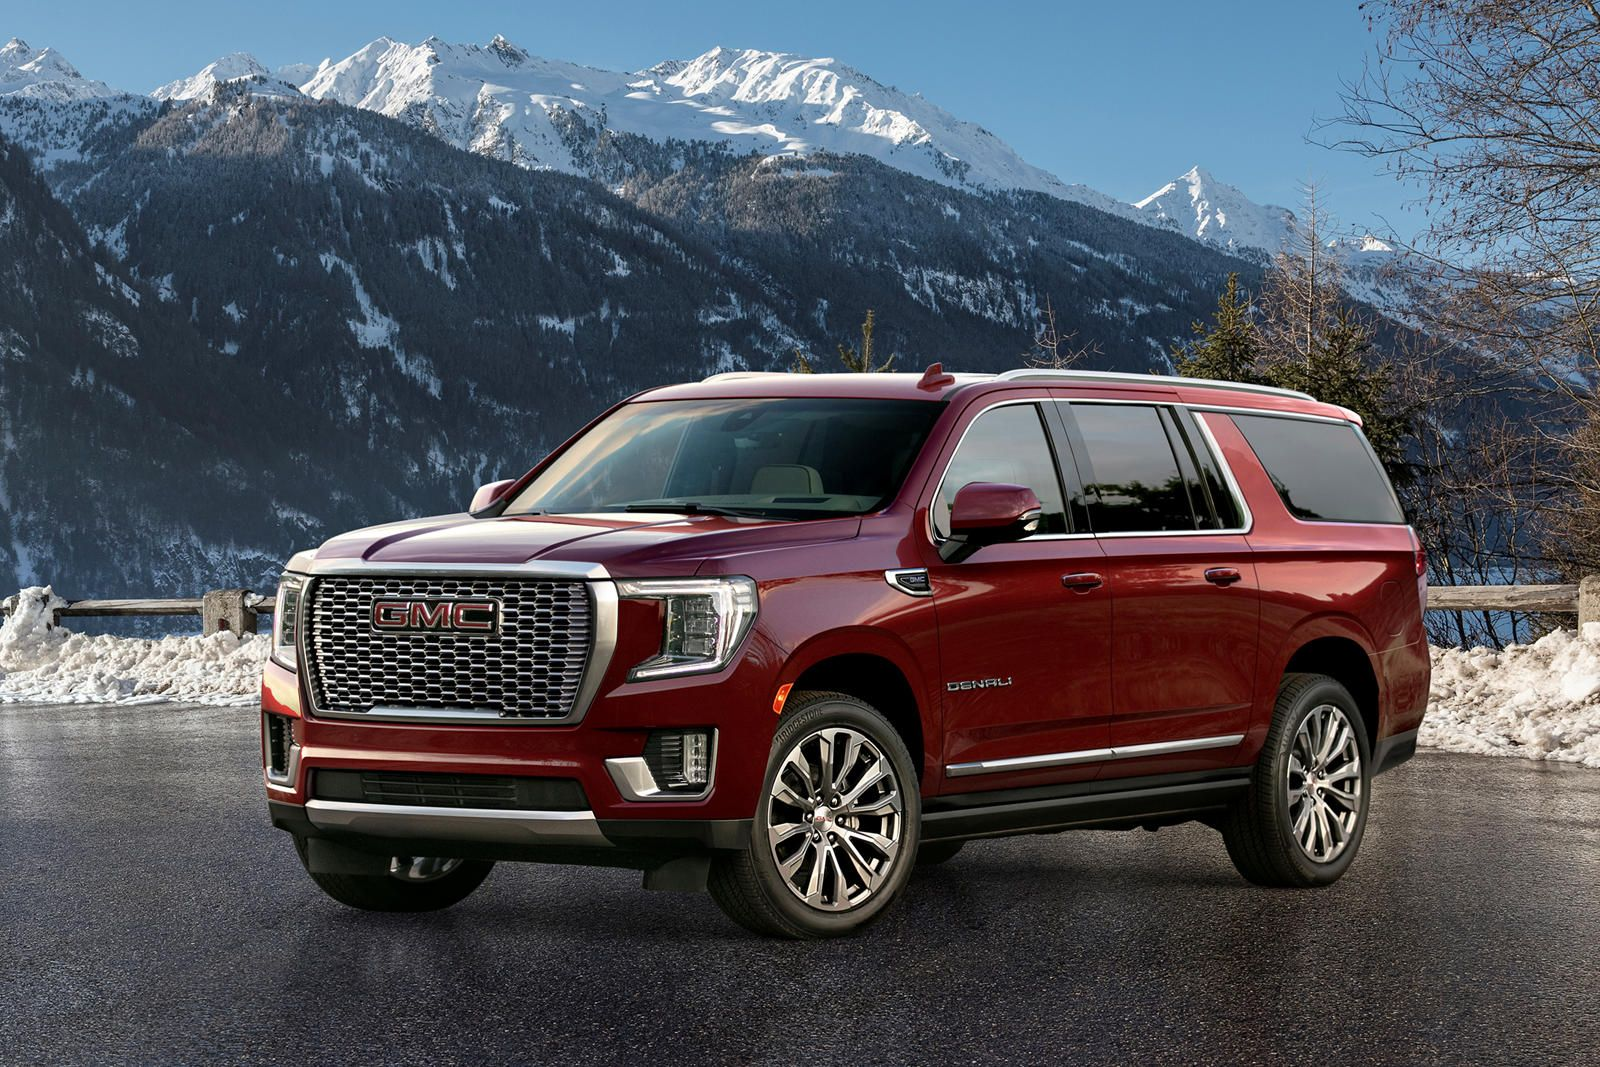 2021 Gmc Yukon Xl First Look Review Big Size Big Luxury Go